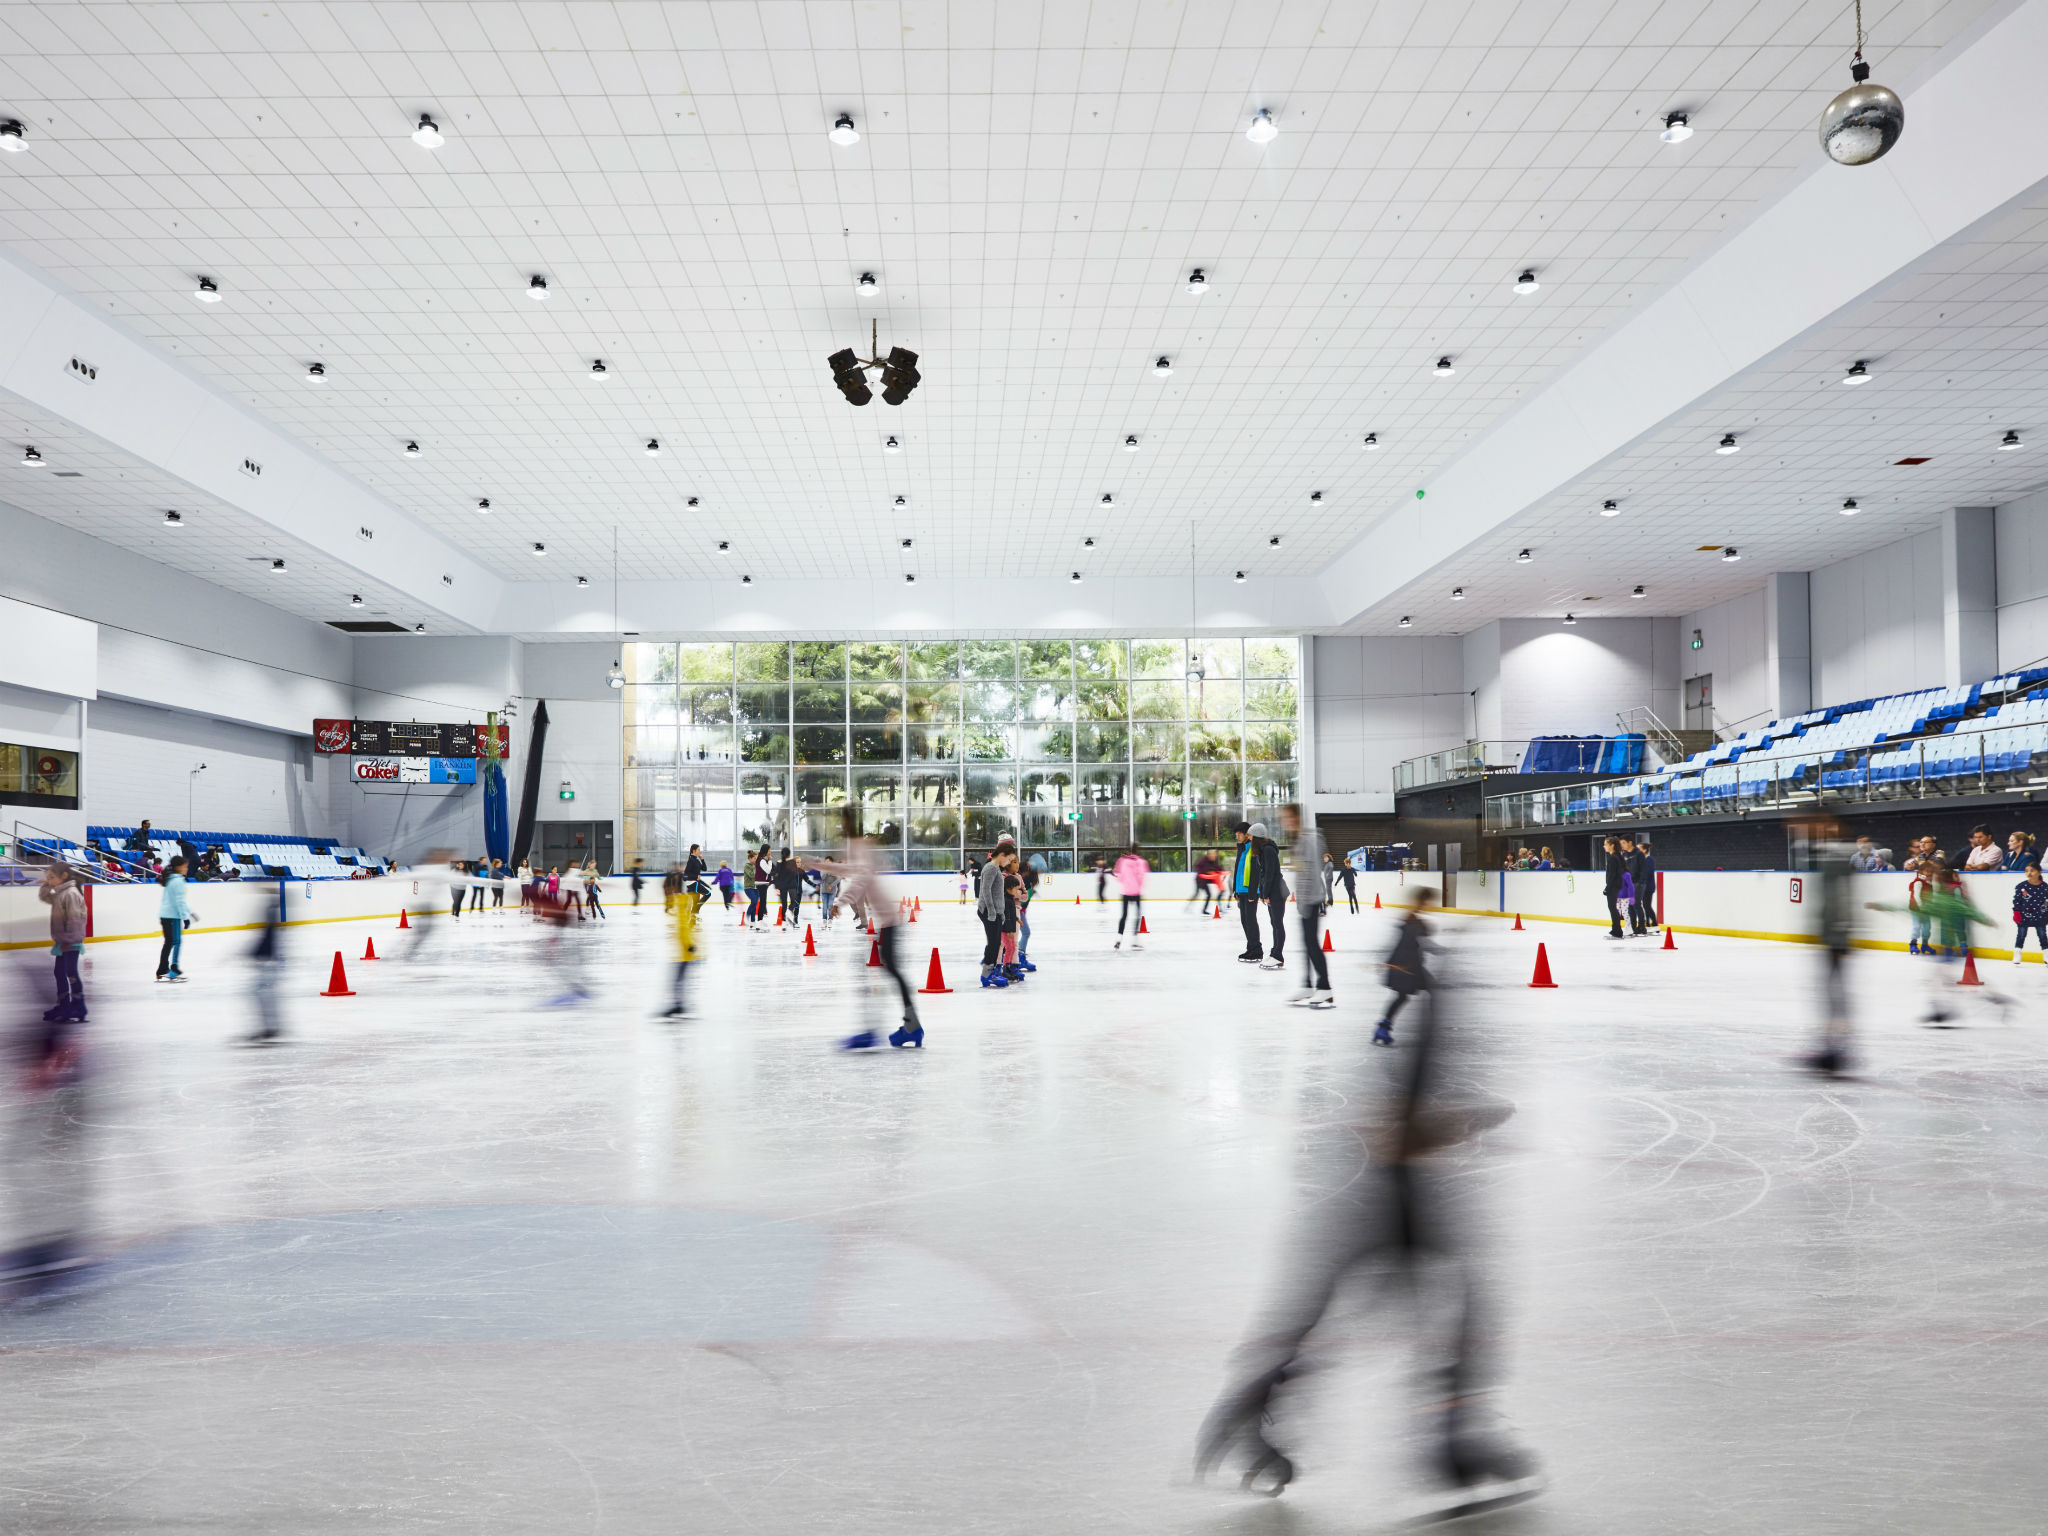 Macquarie Ice Skating rink